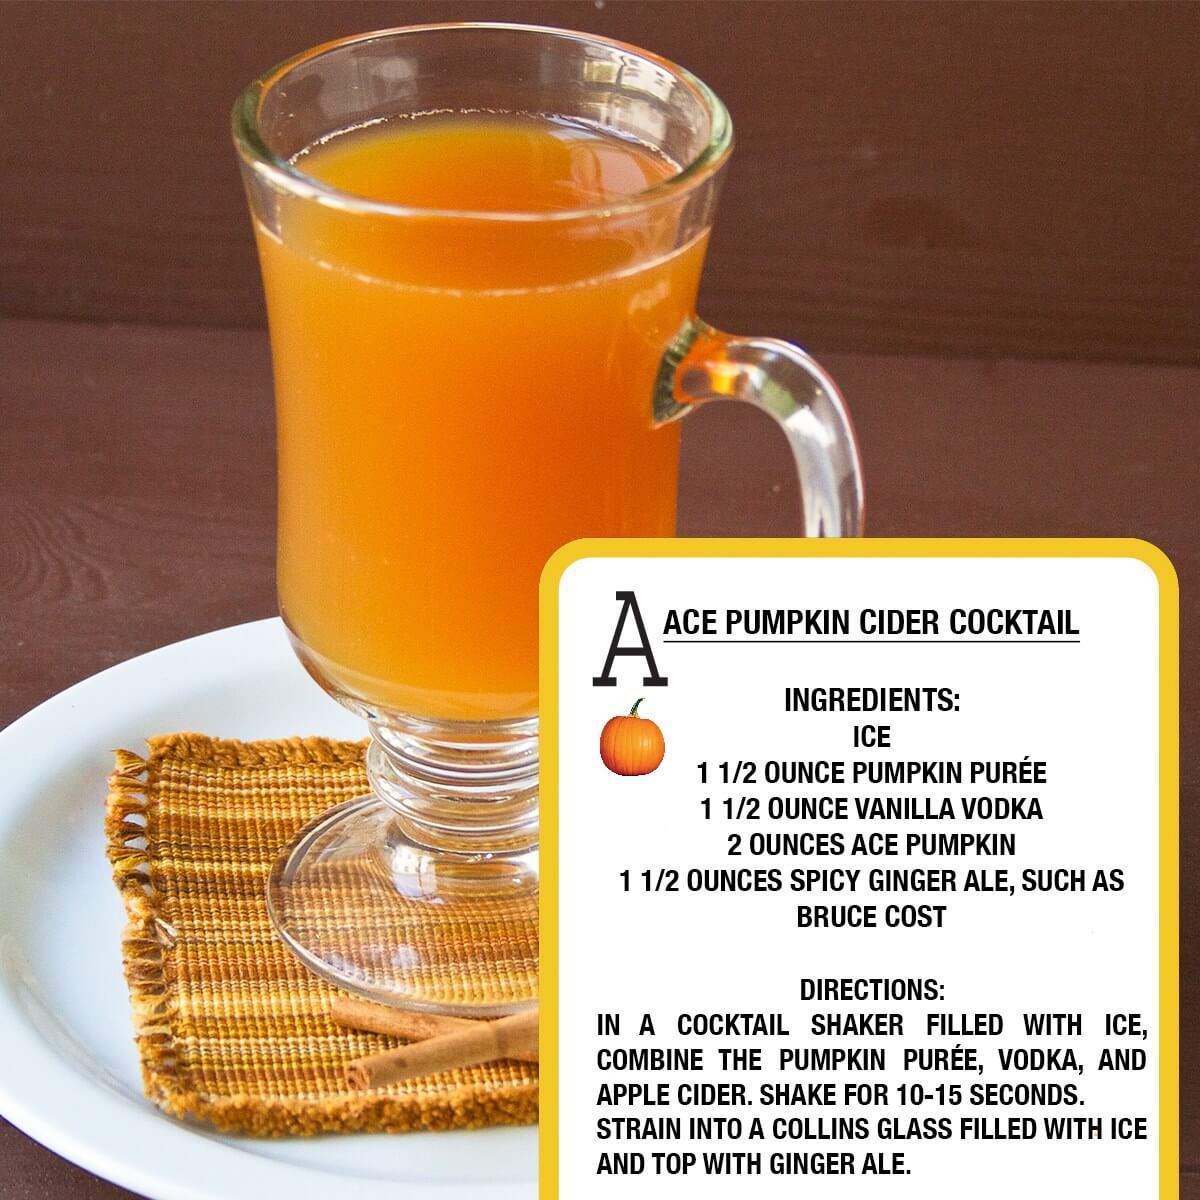 ACE Pumpkin Cider Cocktail